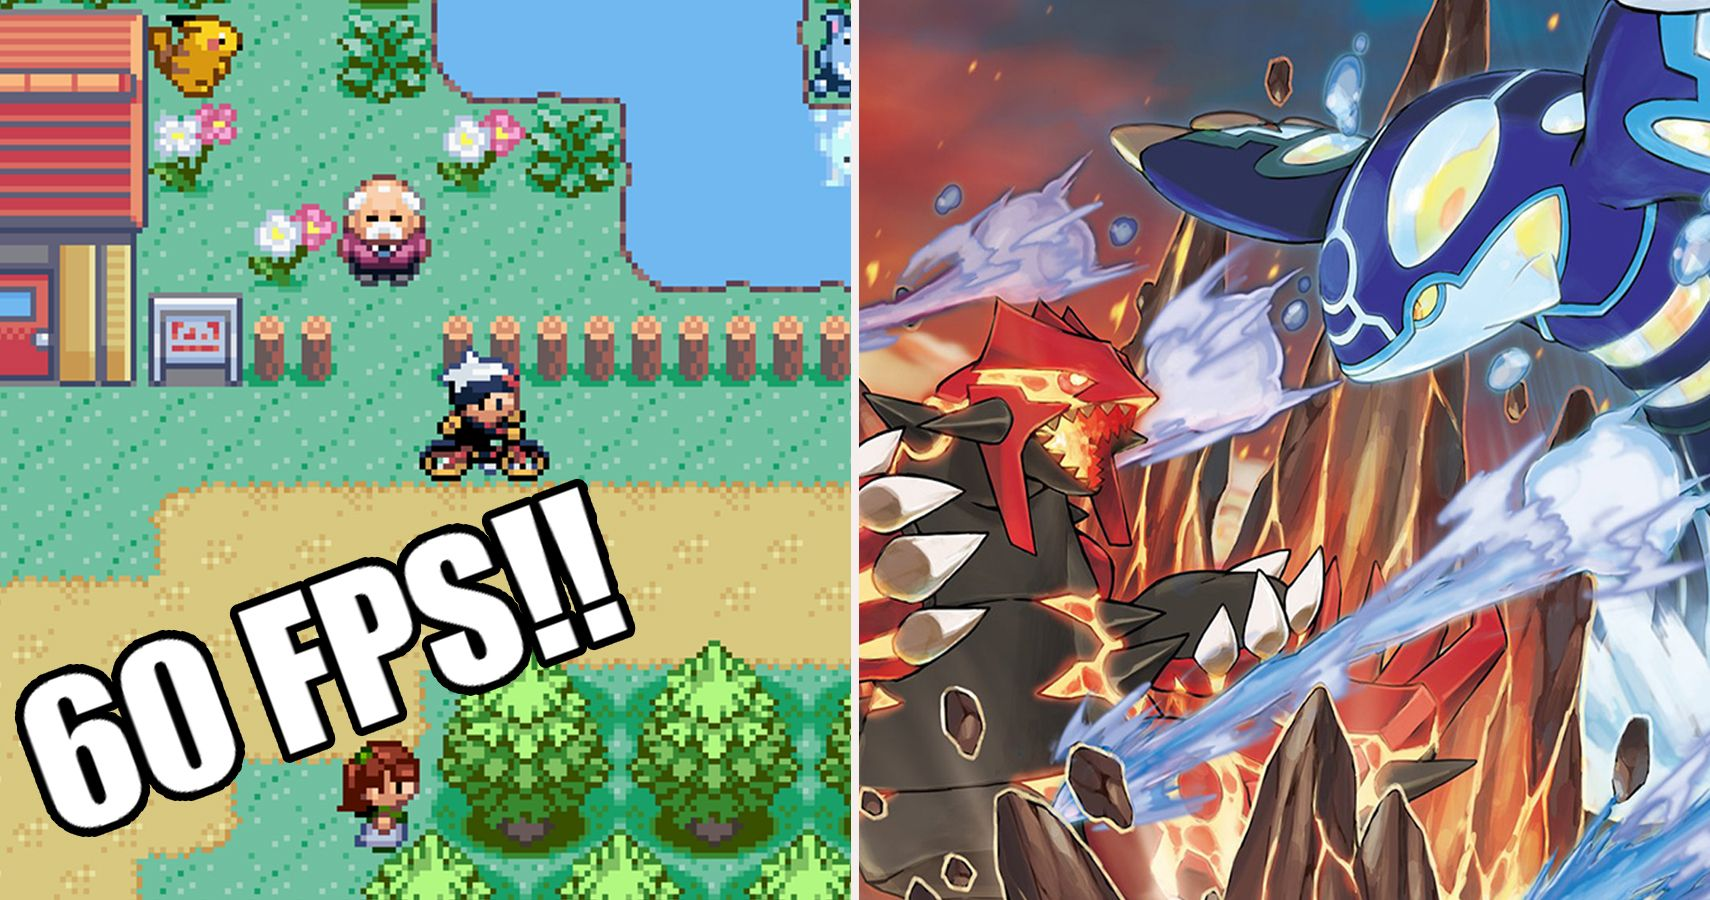 Things You Didn't Know About Pokémon Ruby And Sapphire